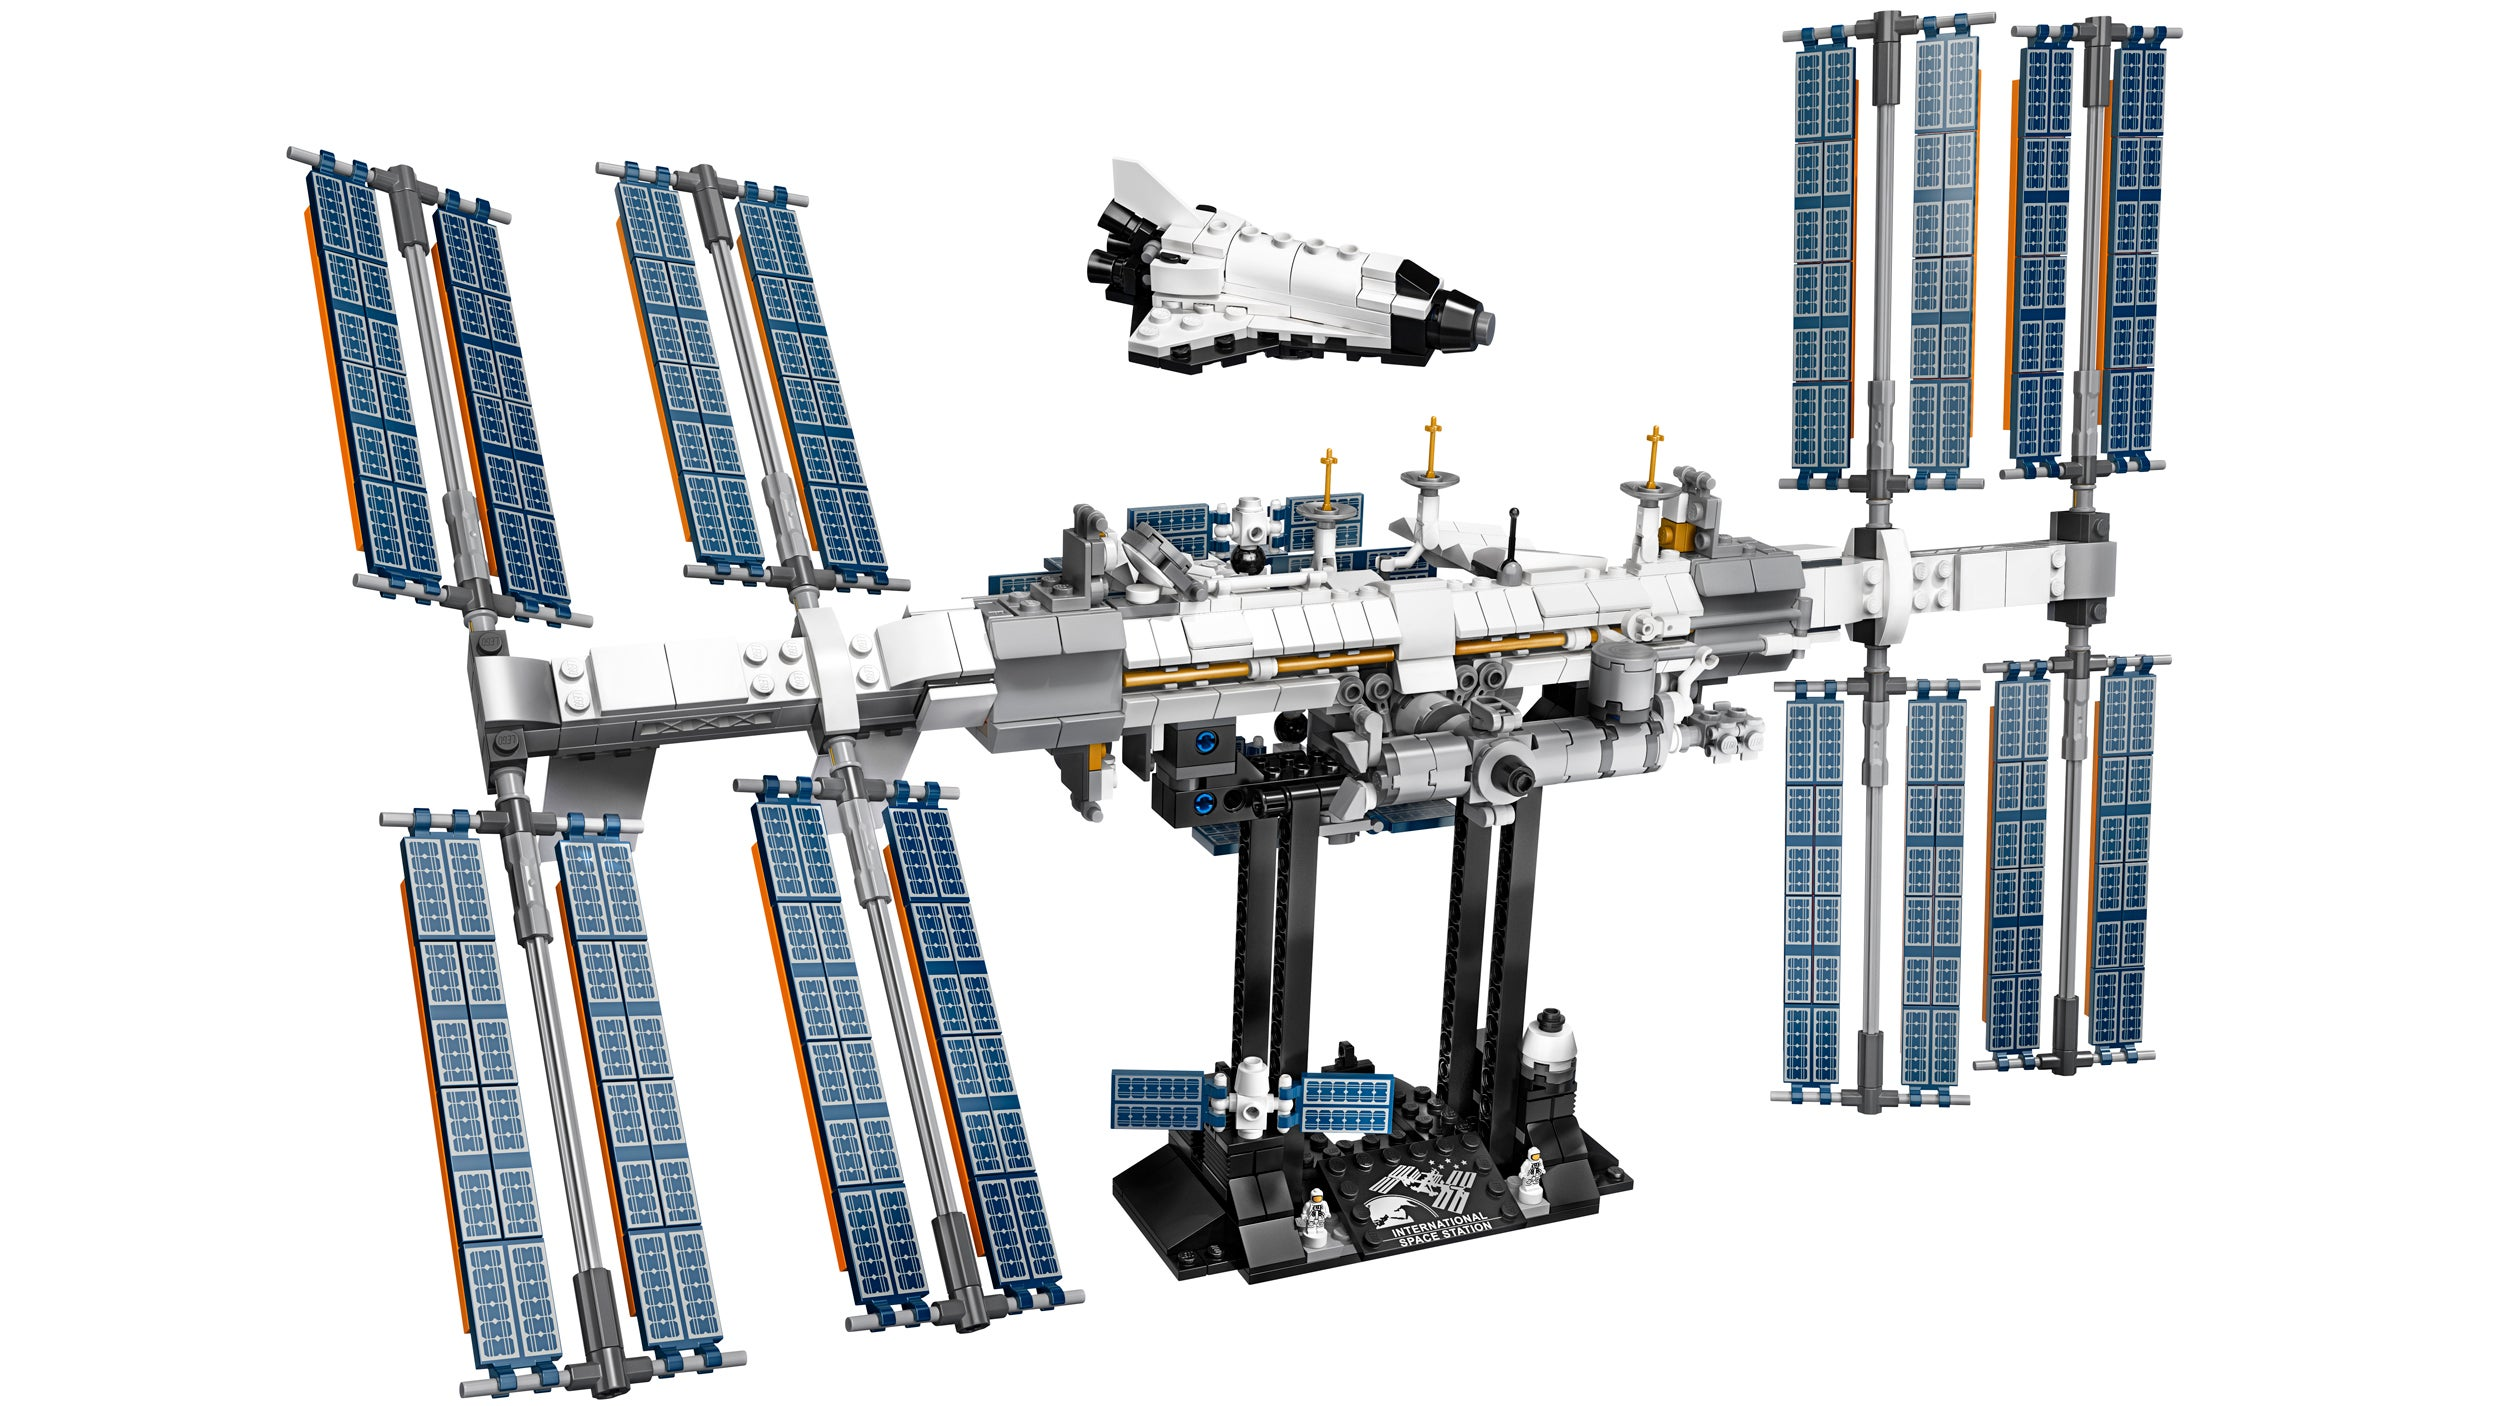 Lego's International Space Station Looks Like An Incredibly Detailed But Impossibly Fragile Build